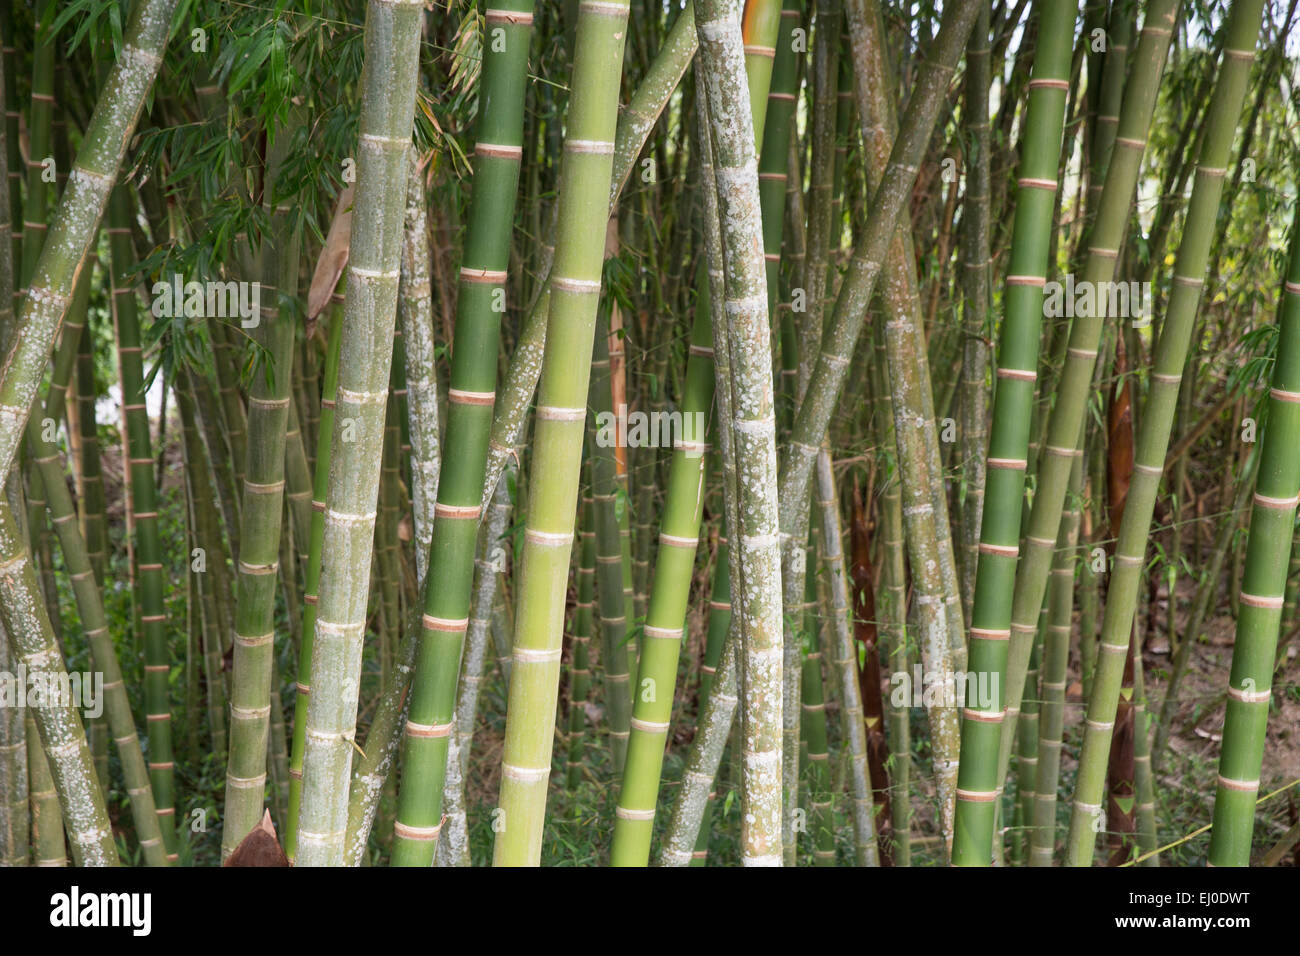 South America, Latin America, Colombia, bamboo, plant, bamboo canes, - Stock Image